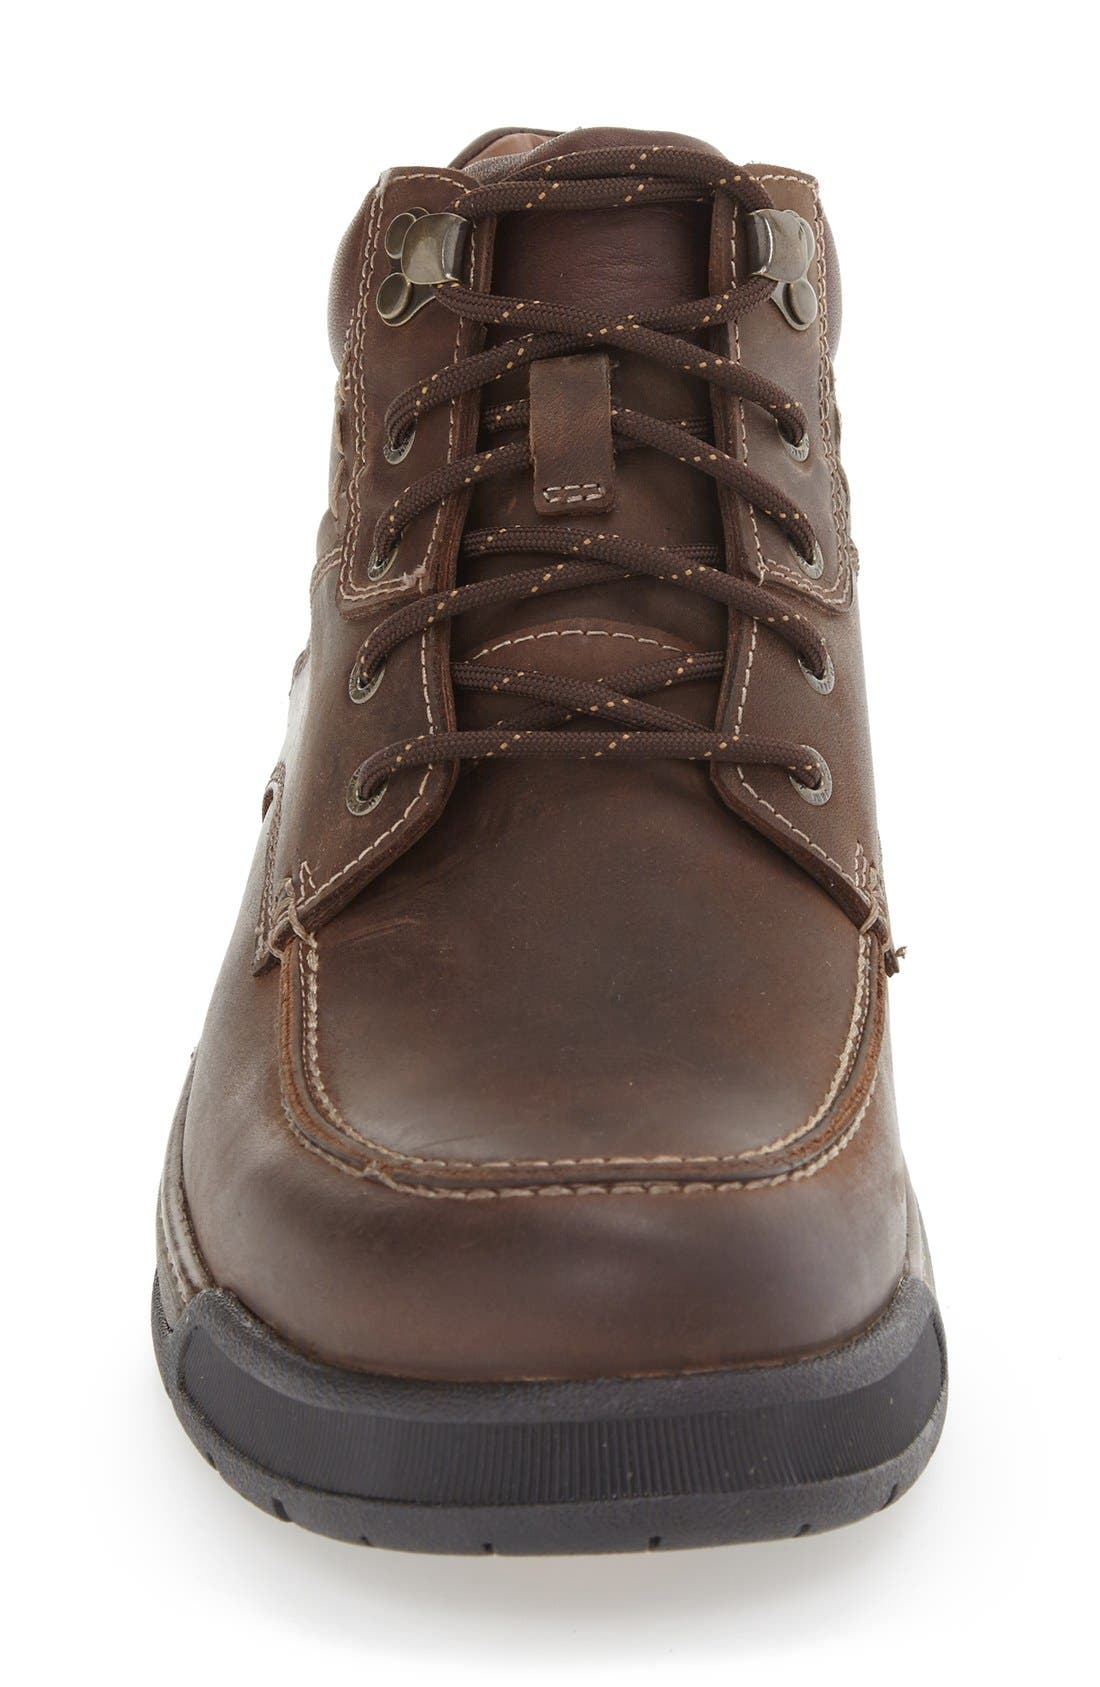 Waterproof Moc Toe Boot,                             Alternate thumbnail 3, color,                             Tan